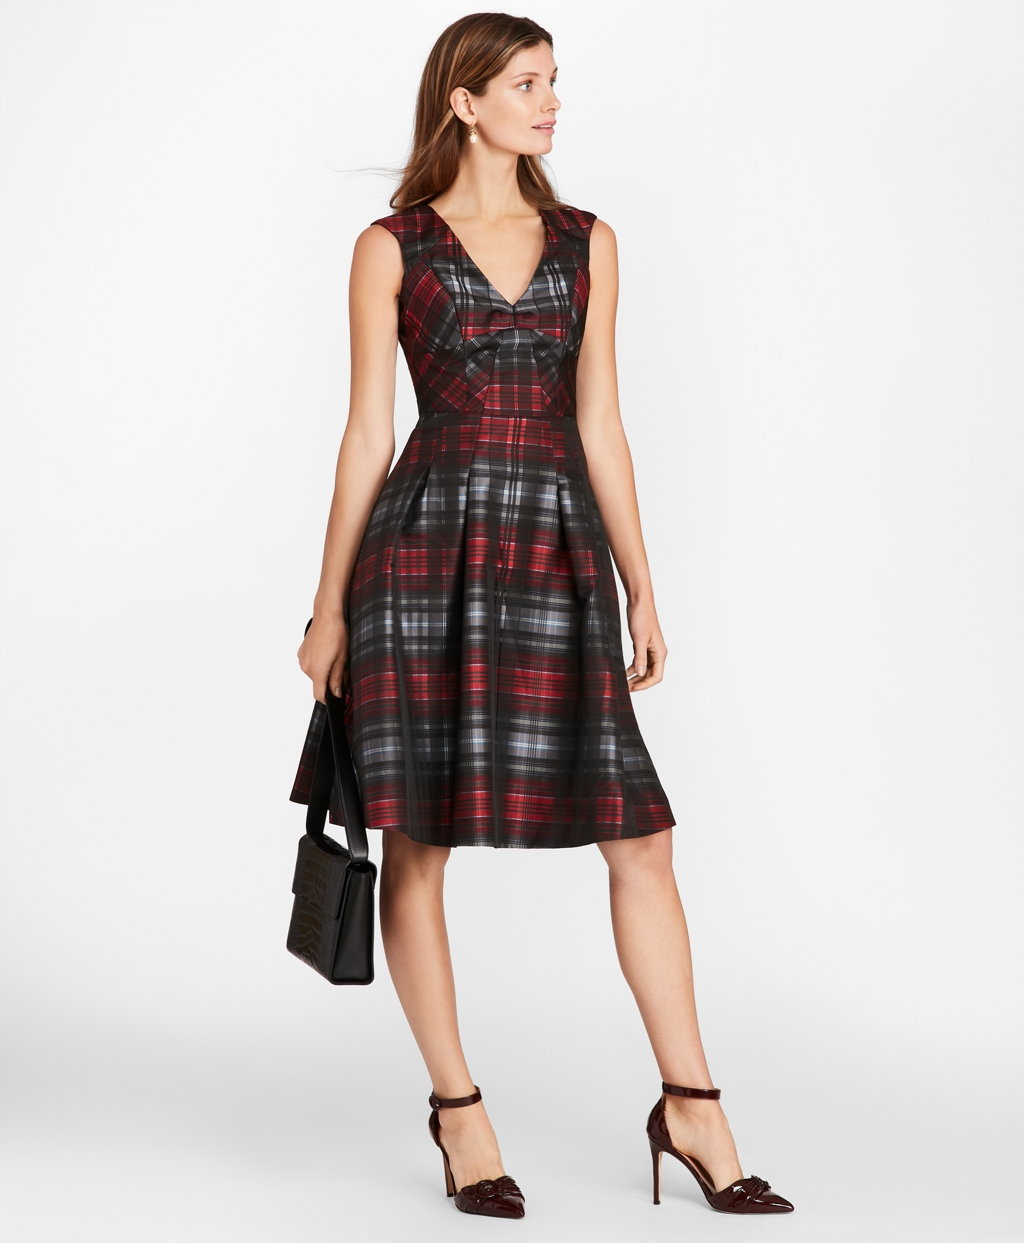 Vintage Christmas Dress | Party Dresses | Night Out Outfits Brooks Brothers Womens Tartan Jacquard Dress $398.00 AT vintagedancer.com